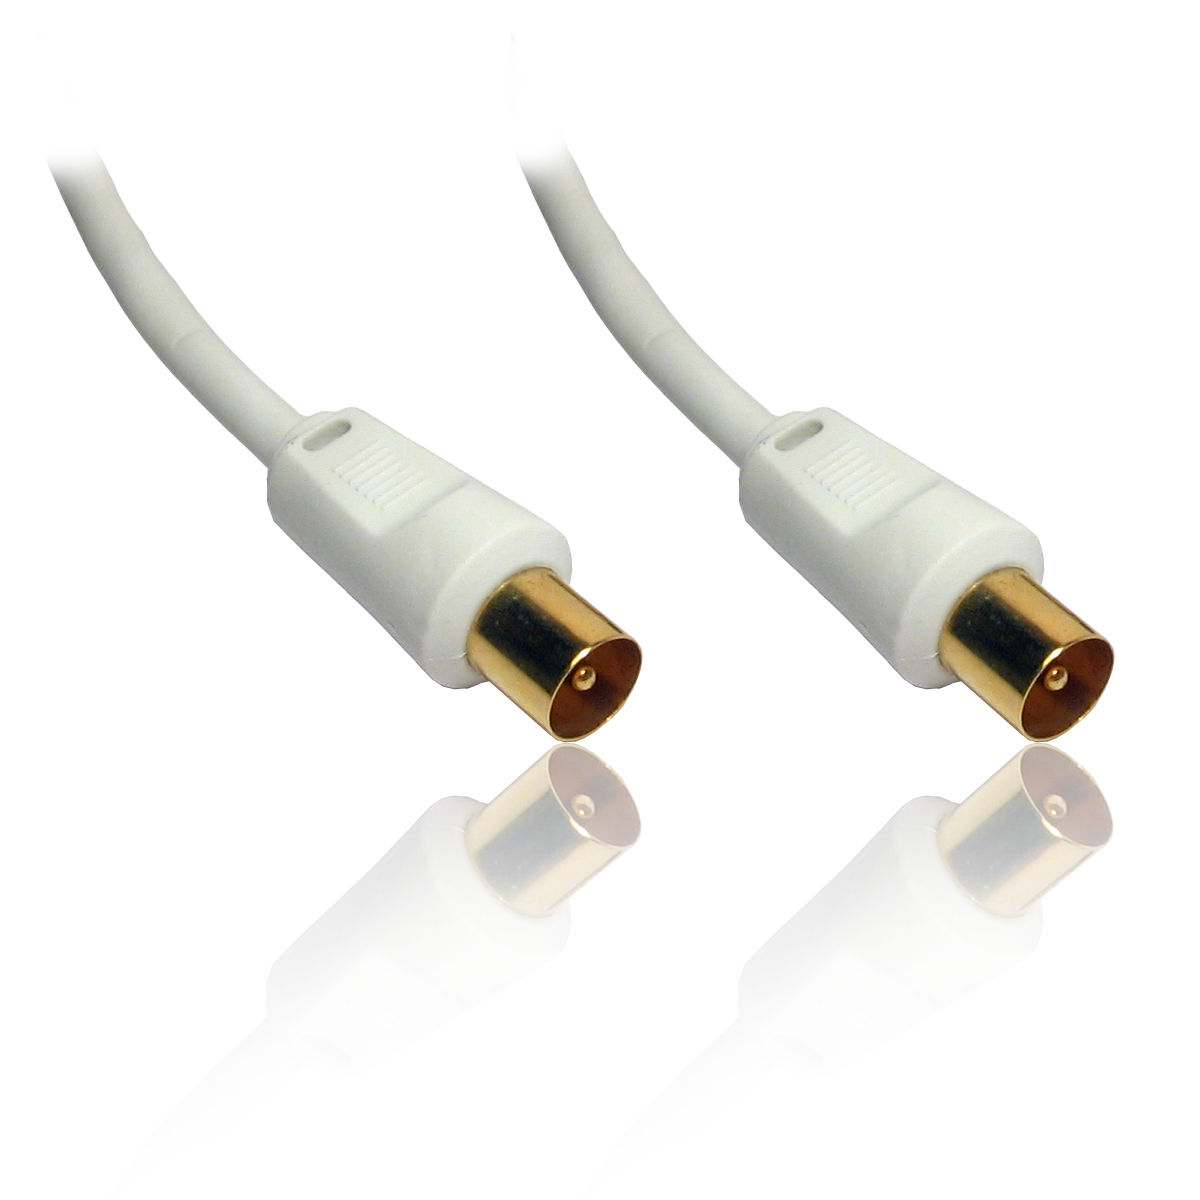 white coaxial coax tv tele aerial cable lead wire gold 10m 33 39 feet. Black Bedroom Furniture Sets. Home Design Ideas